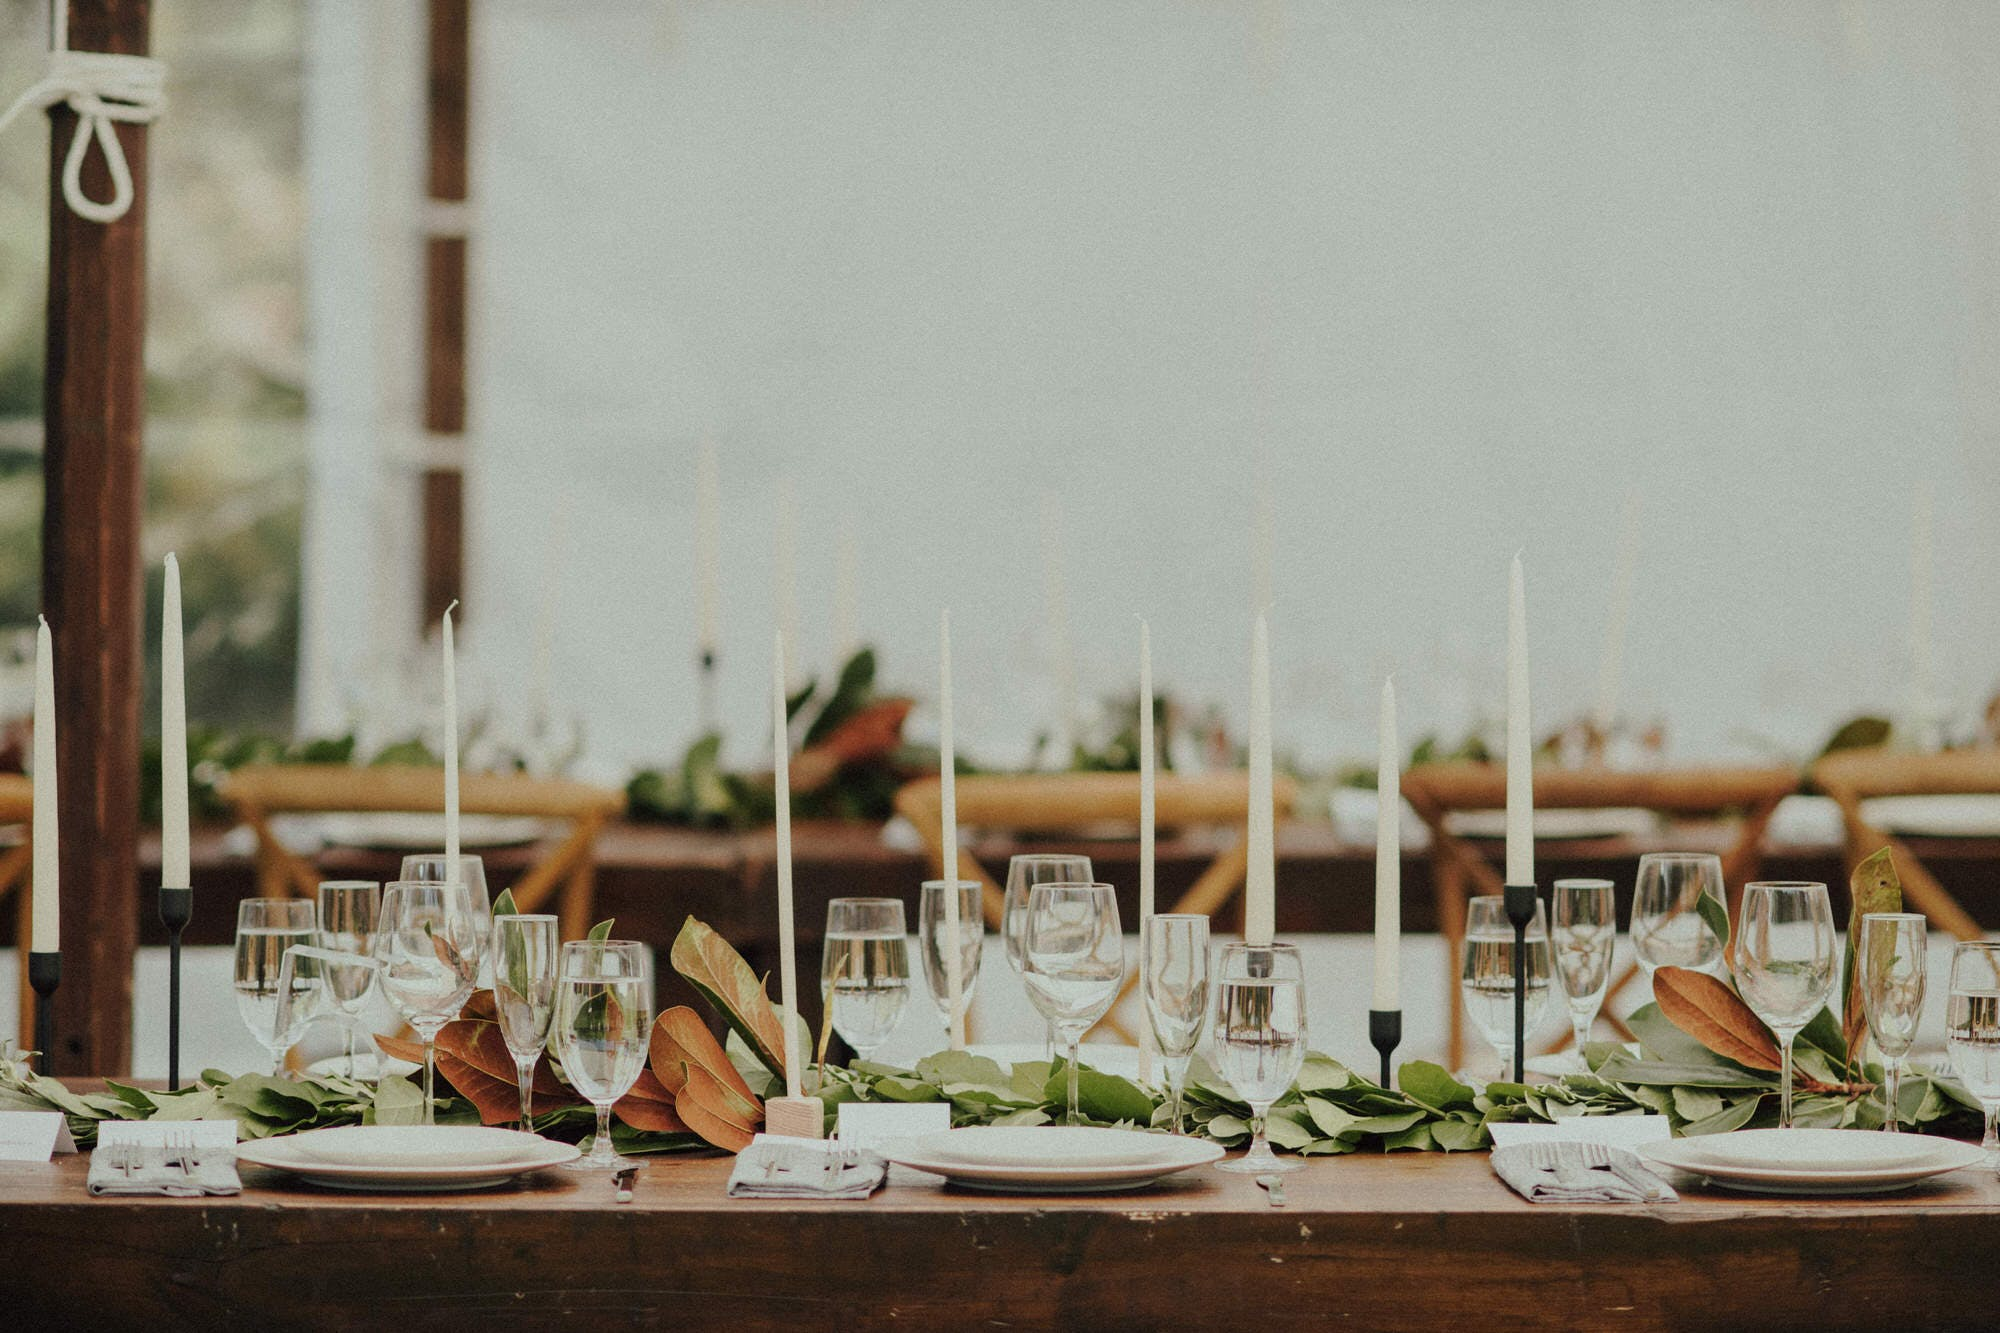 details of candles and florals on tabletop